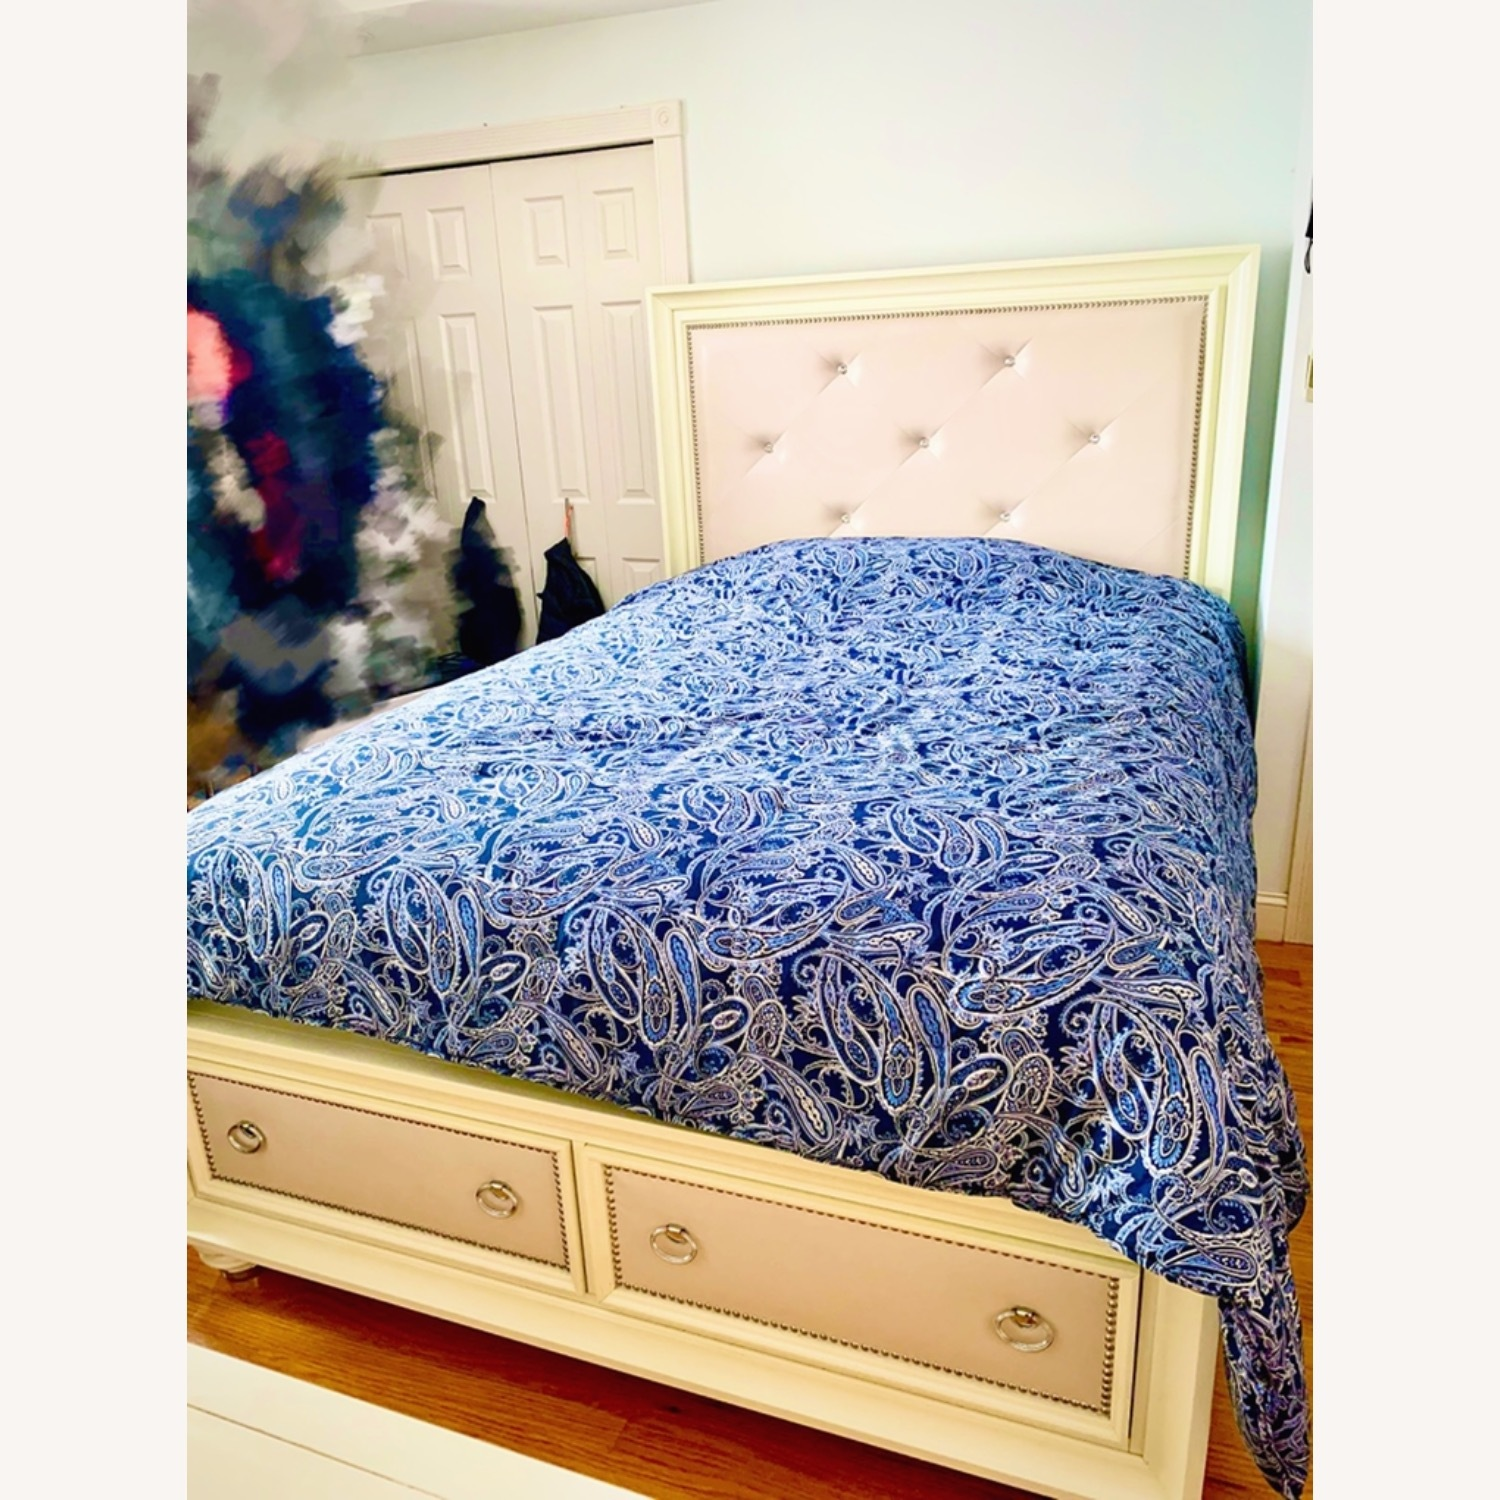 Huffman Koos Furniture Queen Bed Frame w/ 2 Drawers - image-1